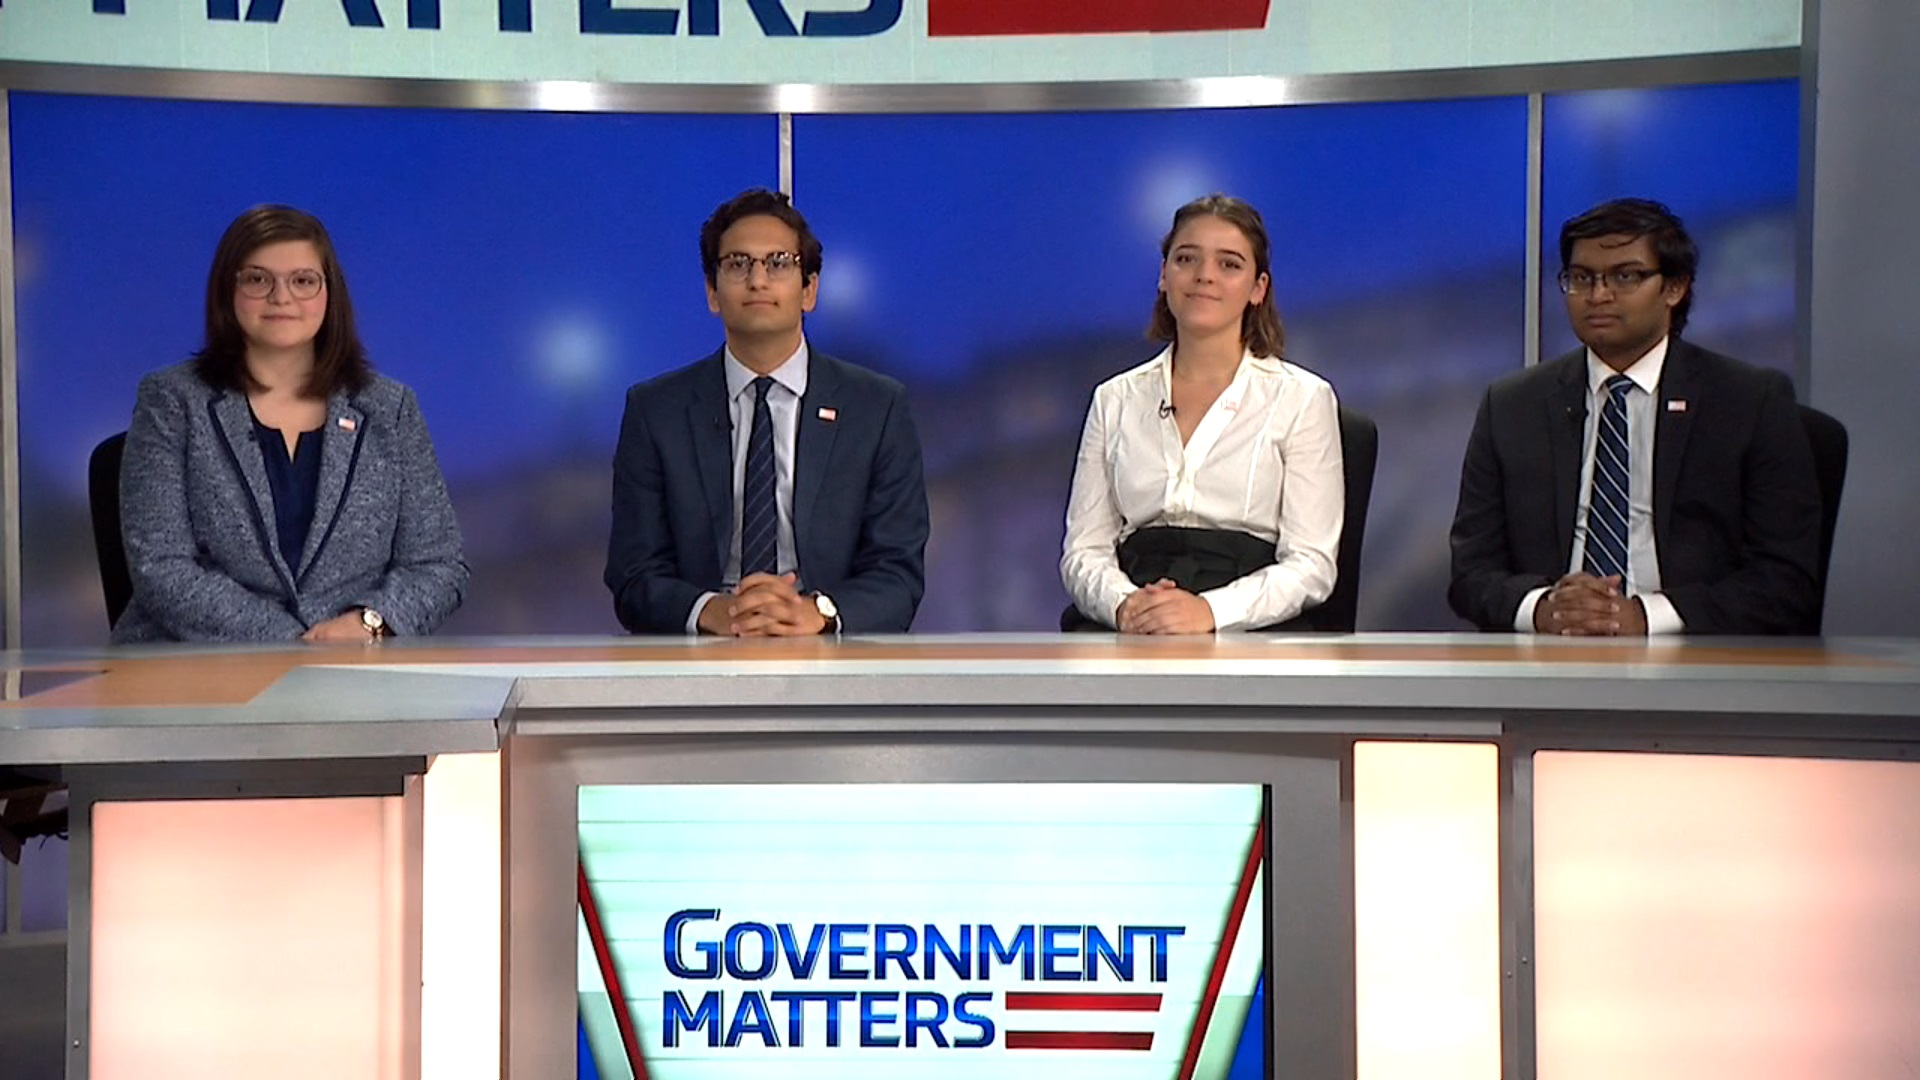 Coding it Forward fellowship propels next generation of government IT leaders